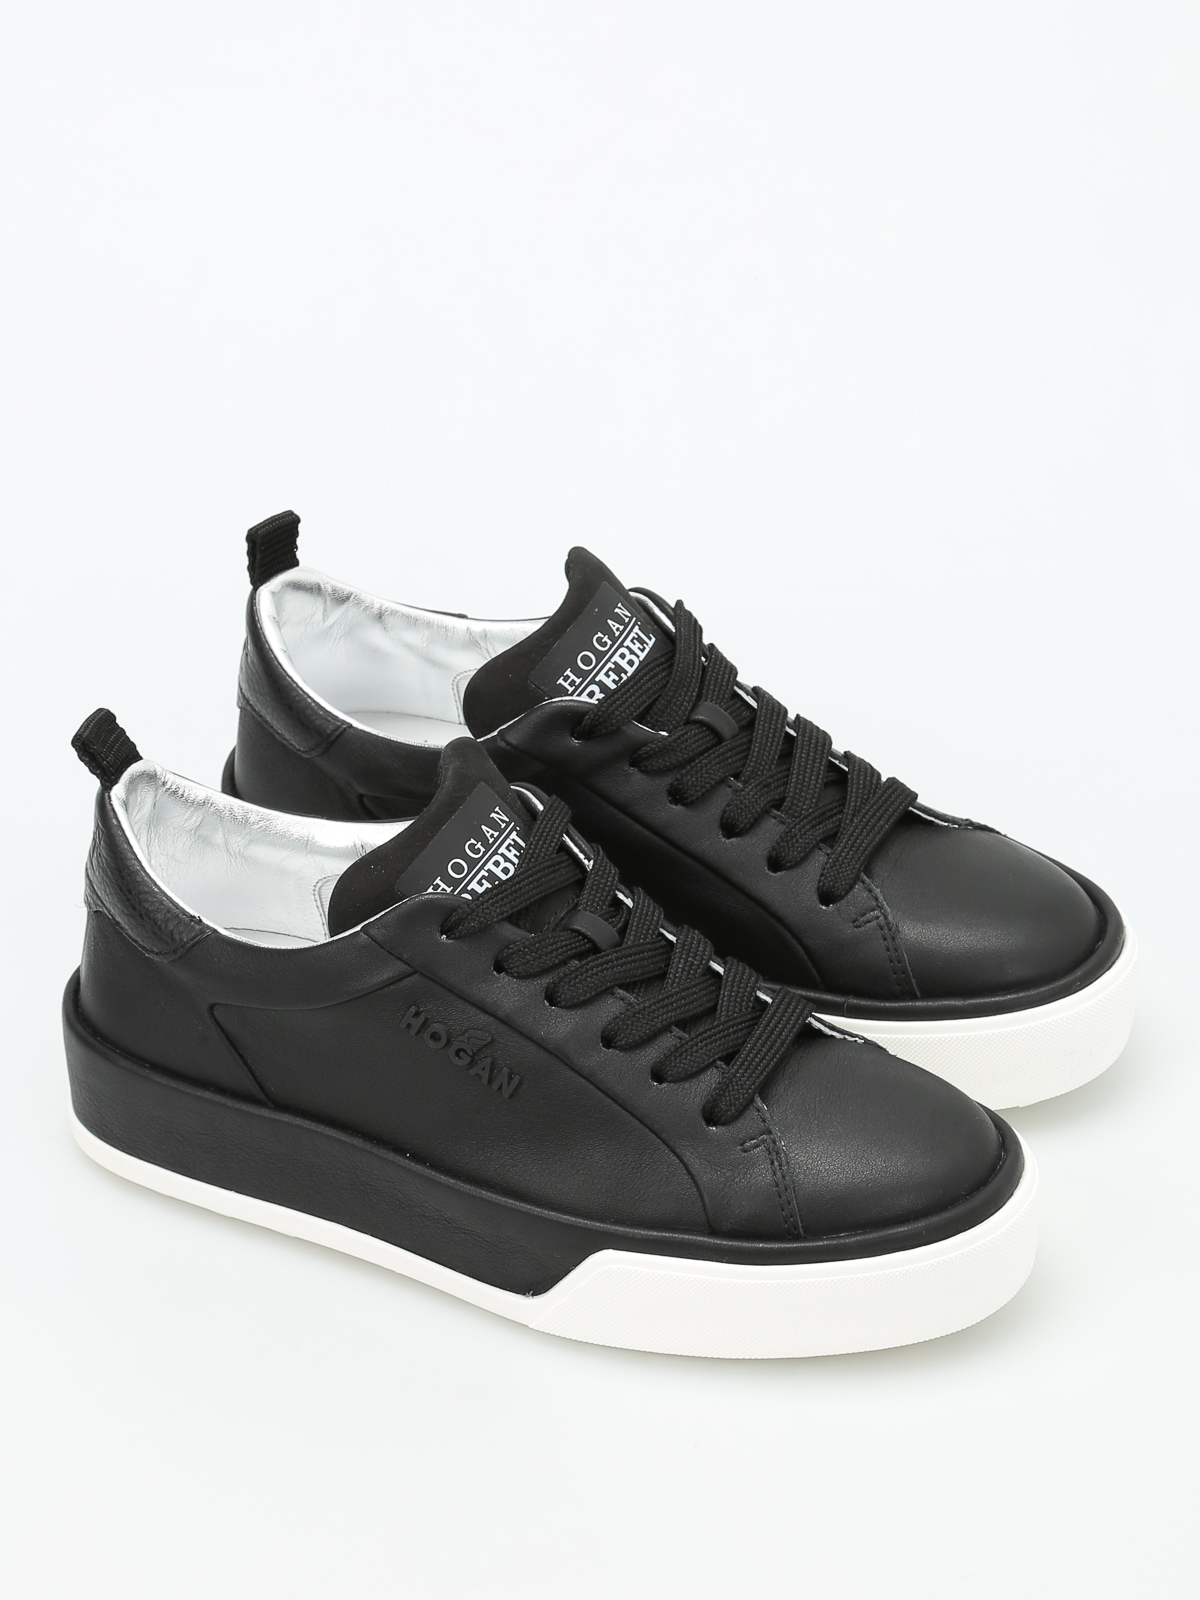 Best Selling Black R320 sneakers Hogan Clearance Authentic Outlet Store Locations With Paypal Low Price Exclusive Cheap Online V7Wk5EjShc